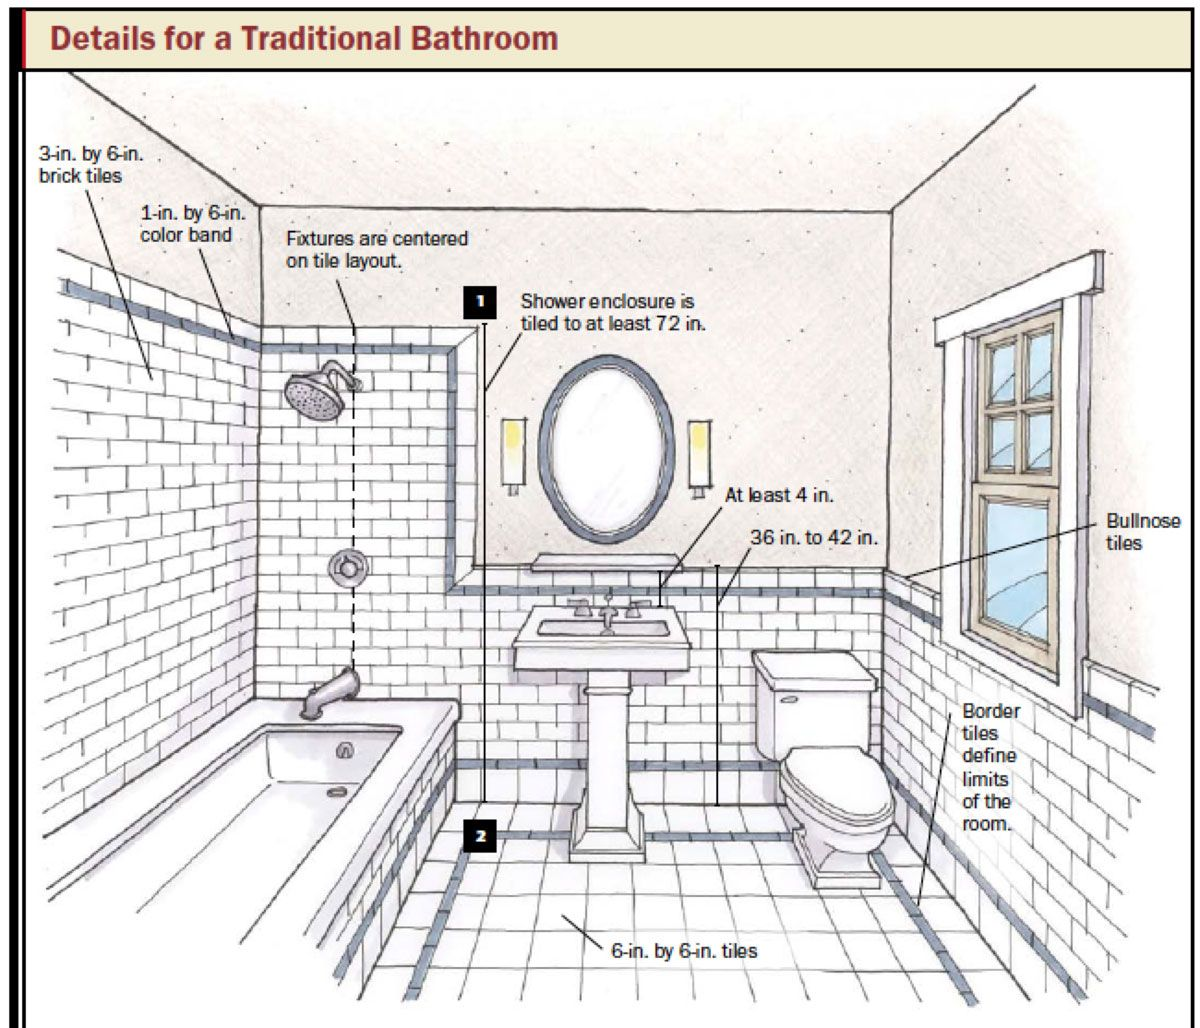 Design Bathroom Floor Plan Tool Bathroom And Kitchen Design How To Choose Tile And Plan Tile Layouts Bathroom Floor Plans Room Tiles Design Tile Layout